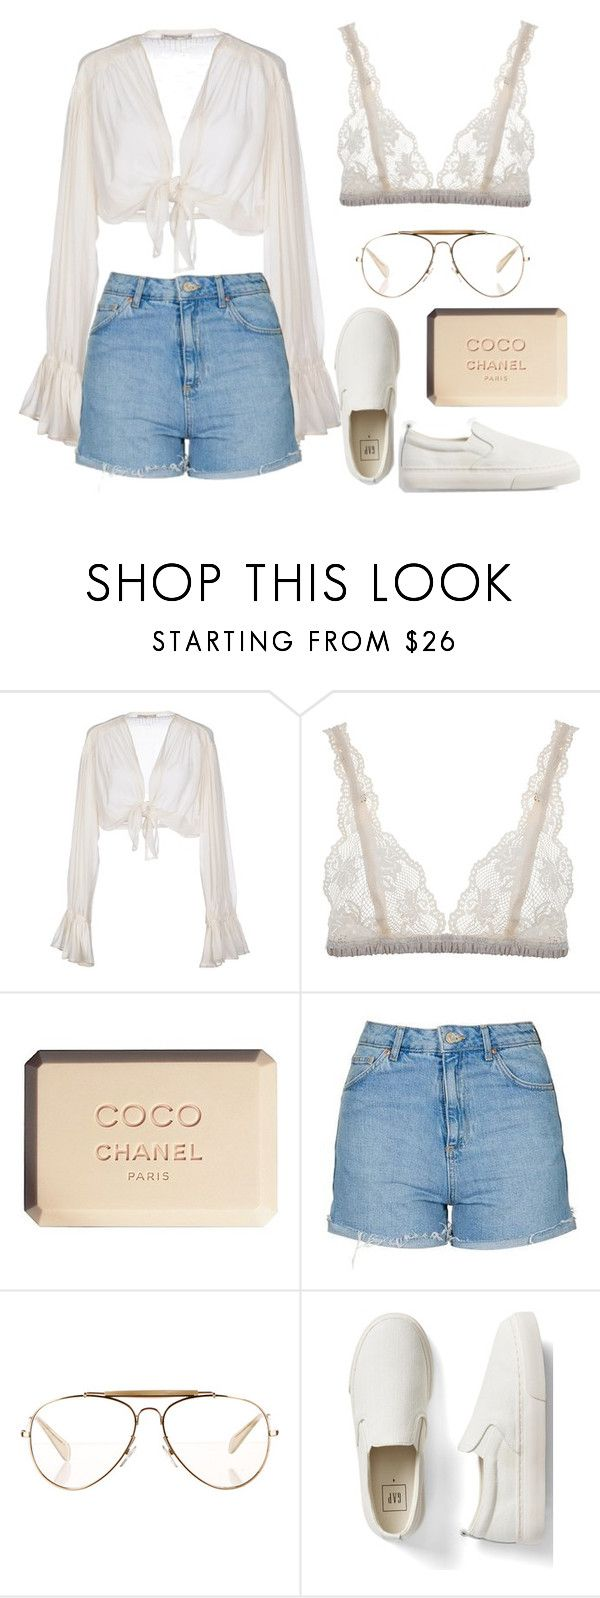 """""""Coachella #6 - Sweet Pies"""" by one-direction-outfits-of-the-day ❤ liked on Polyvore featuring Mes Demoiselles..., Lonely, Chanel, Topshop, CÉLINE, Gap, outfit, festival, coachella and INSPIRE"""